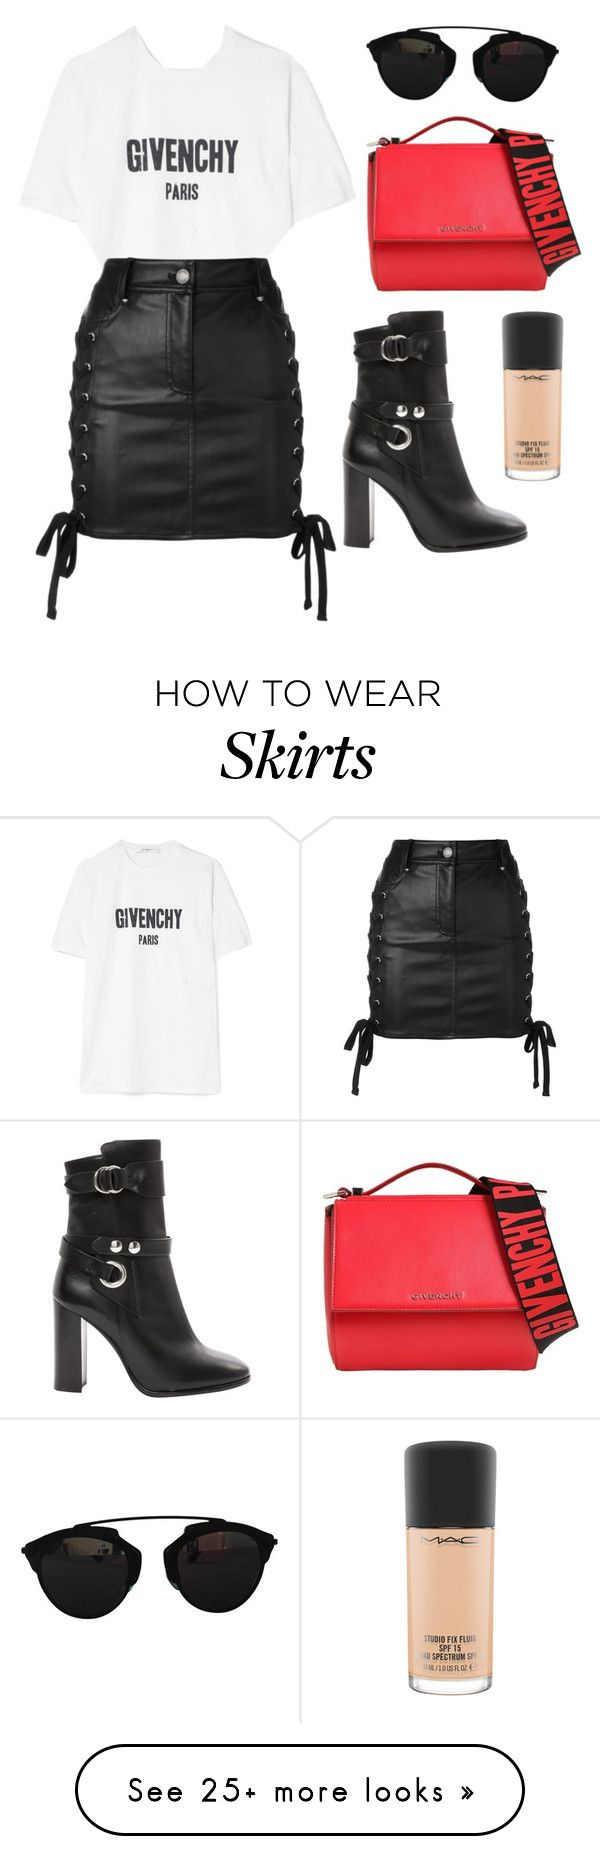 """""""Slay in Givenchy"""" by tasha-m-e on Polyvore featuring Givenchy, Isabel Marant, Versus, Christian Dior and MAC Cosmetics"""